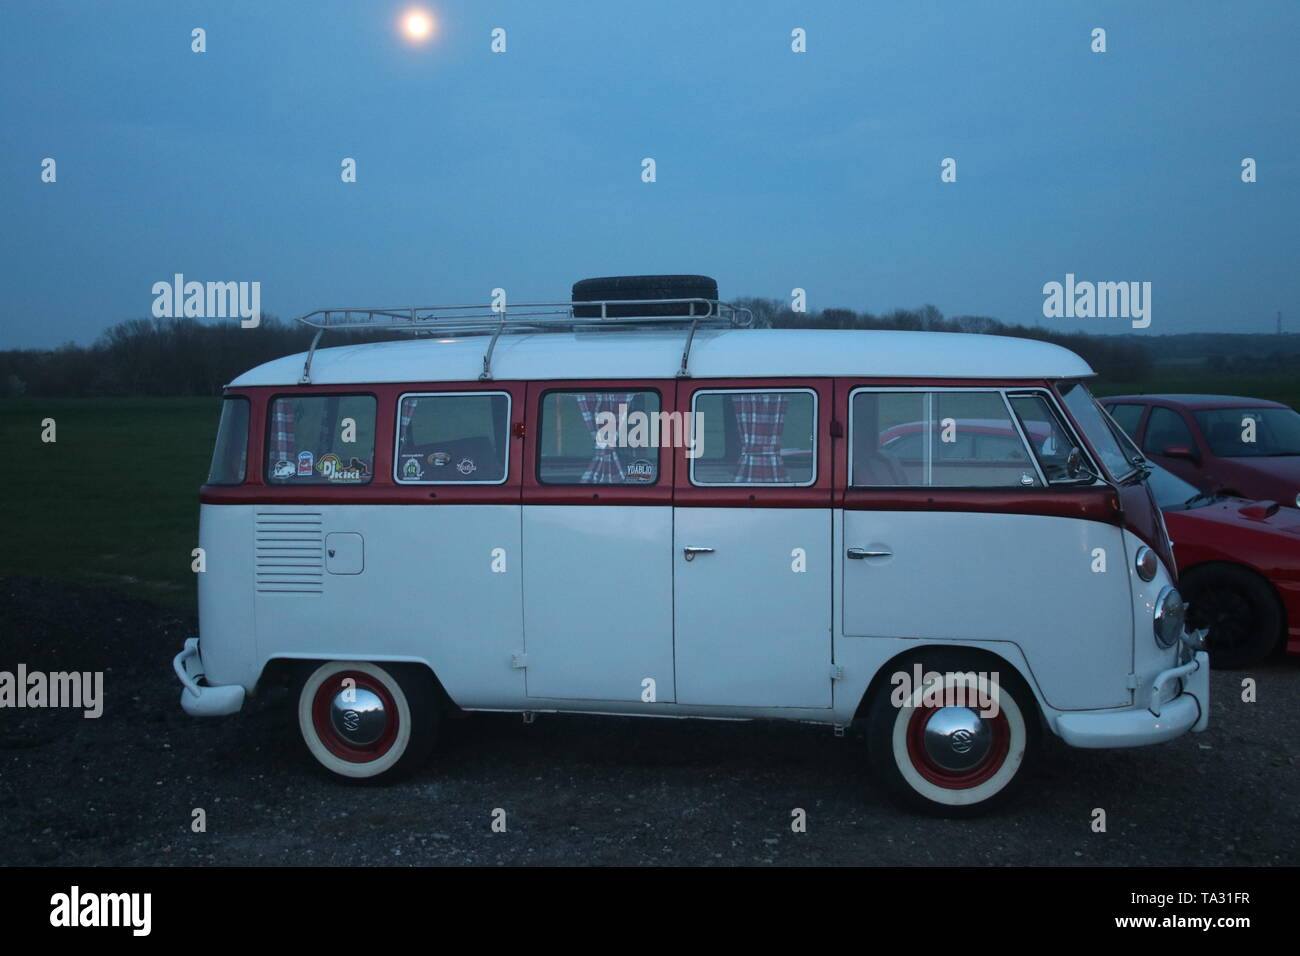 A DUSK SIDE VIEW PHOTO OF A RETRO CLASSIC SPLIT-SCREEN VW VOLKSWAGEN CAMPER BUS VAN WITH SHINING MOON IN SKY ABOVE VEHICLE - Stock Image